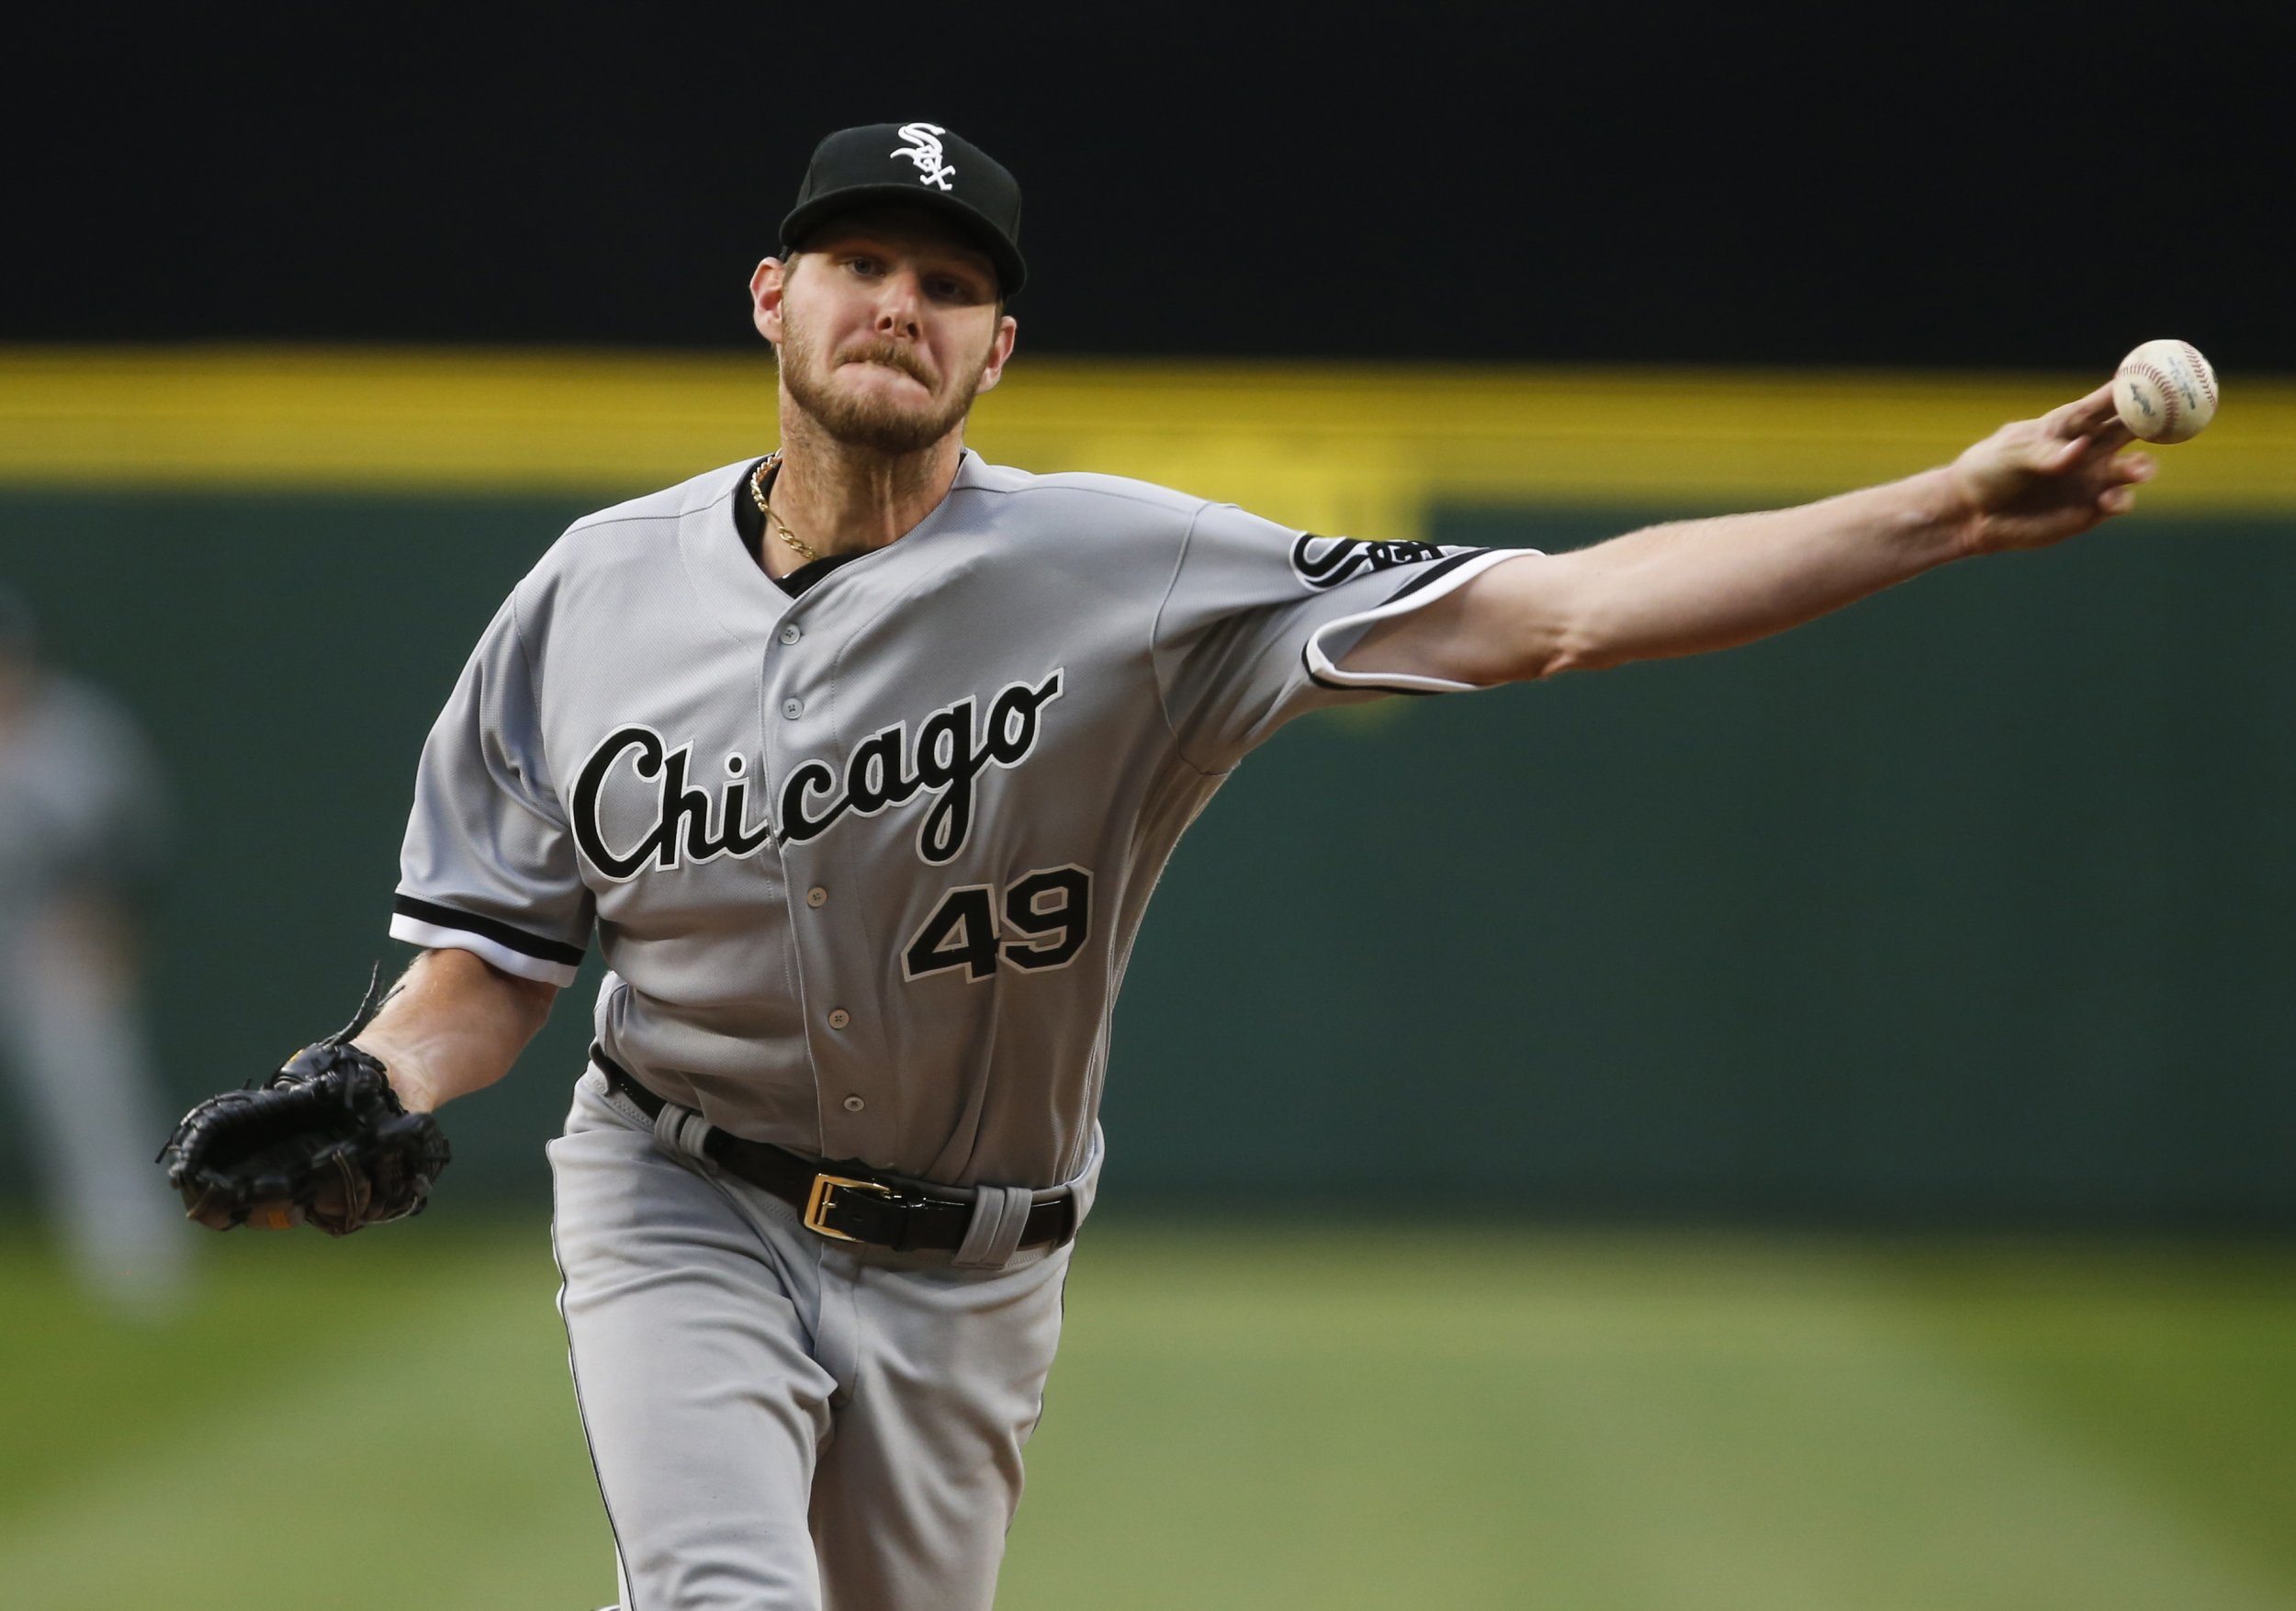 695f5ff93c0 Sale led the majors in strikeouts last season and leads in shredded  uniforms this season. USA TODAY SPORTS